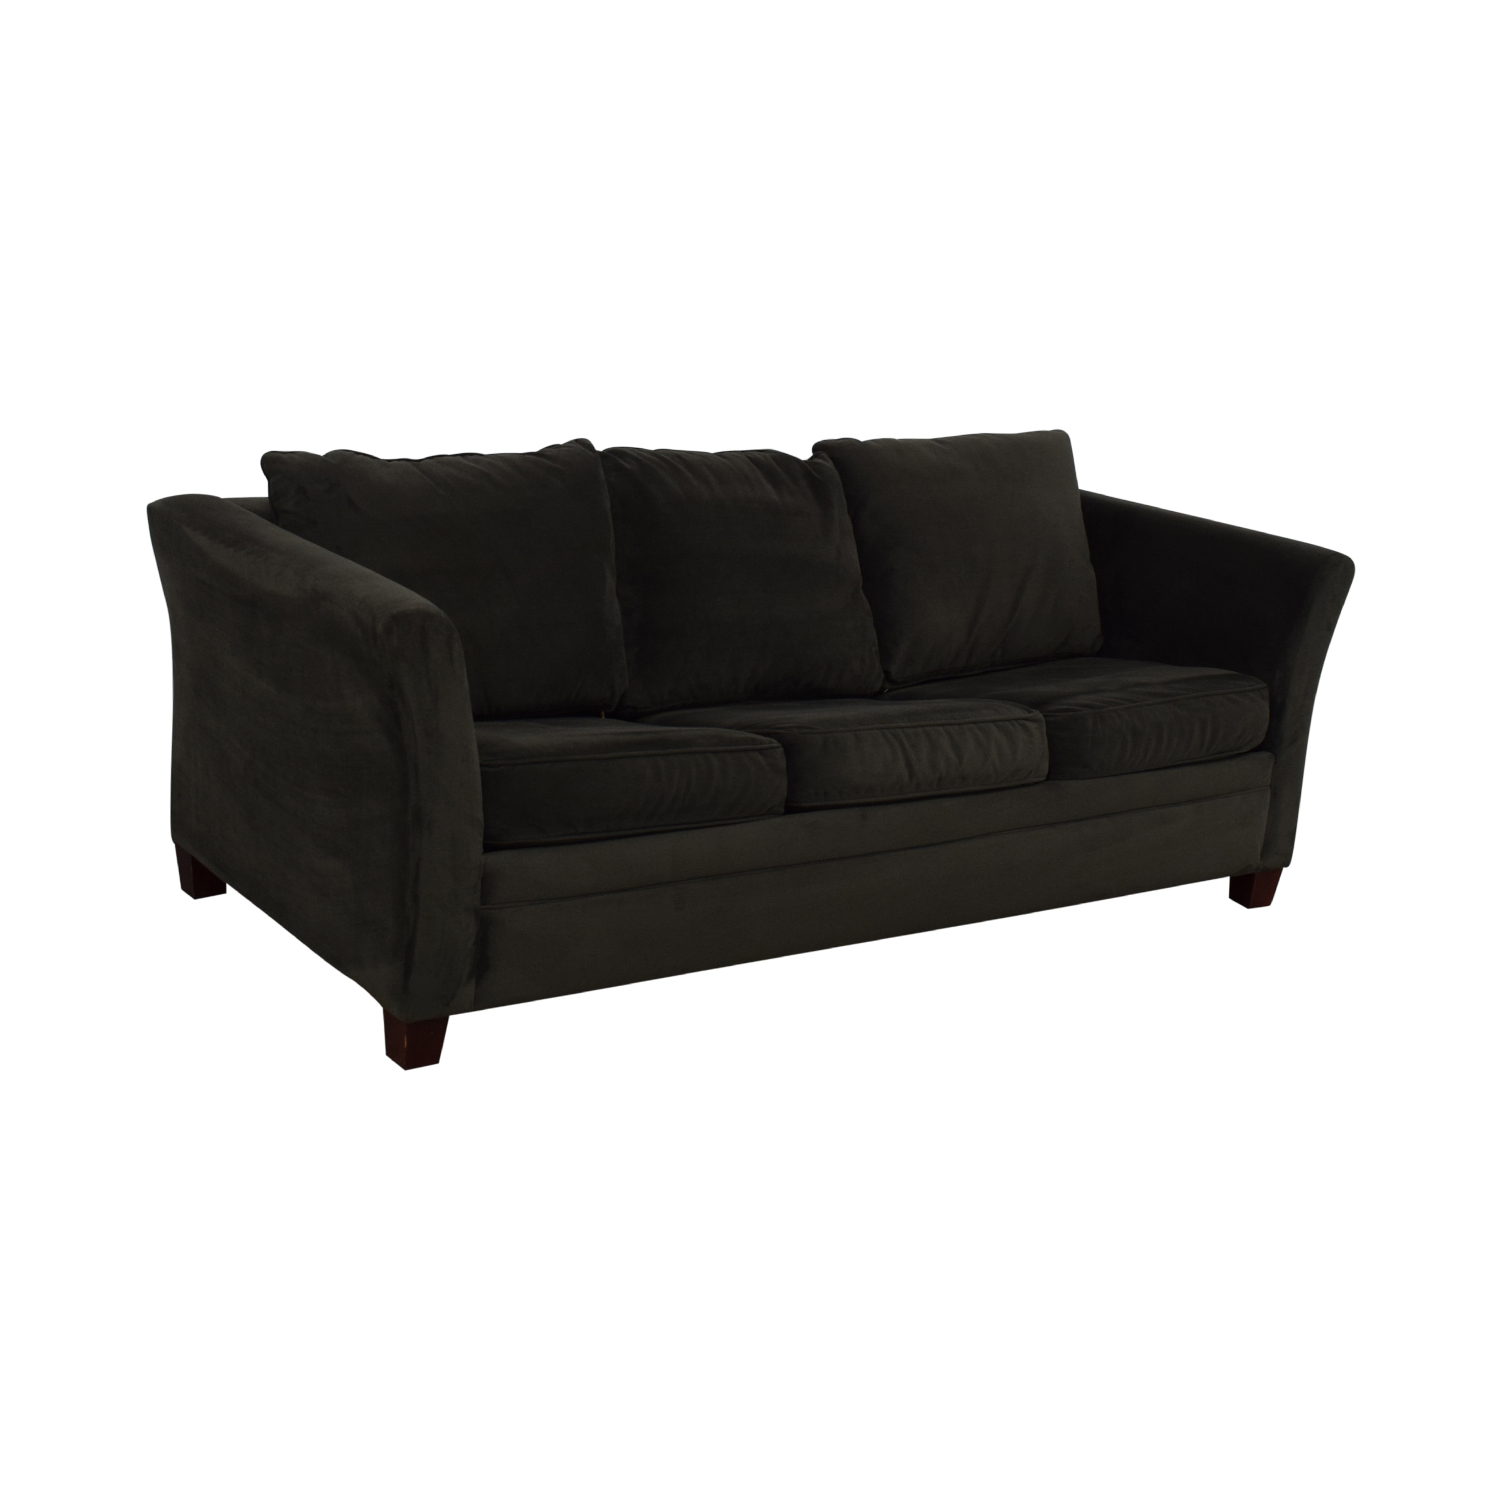 Klaussner Klaussner Taylor Queen Sleeper Sofa for sale